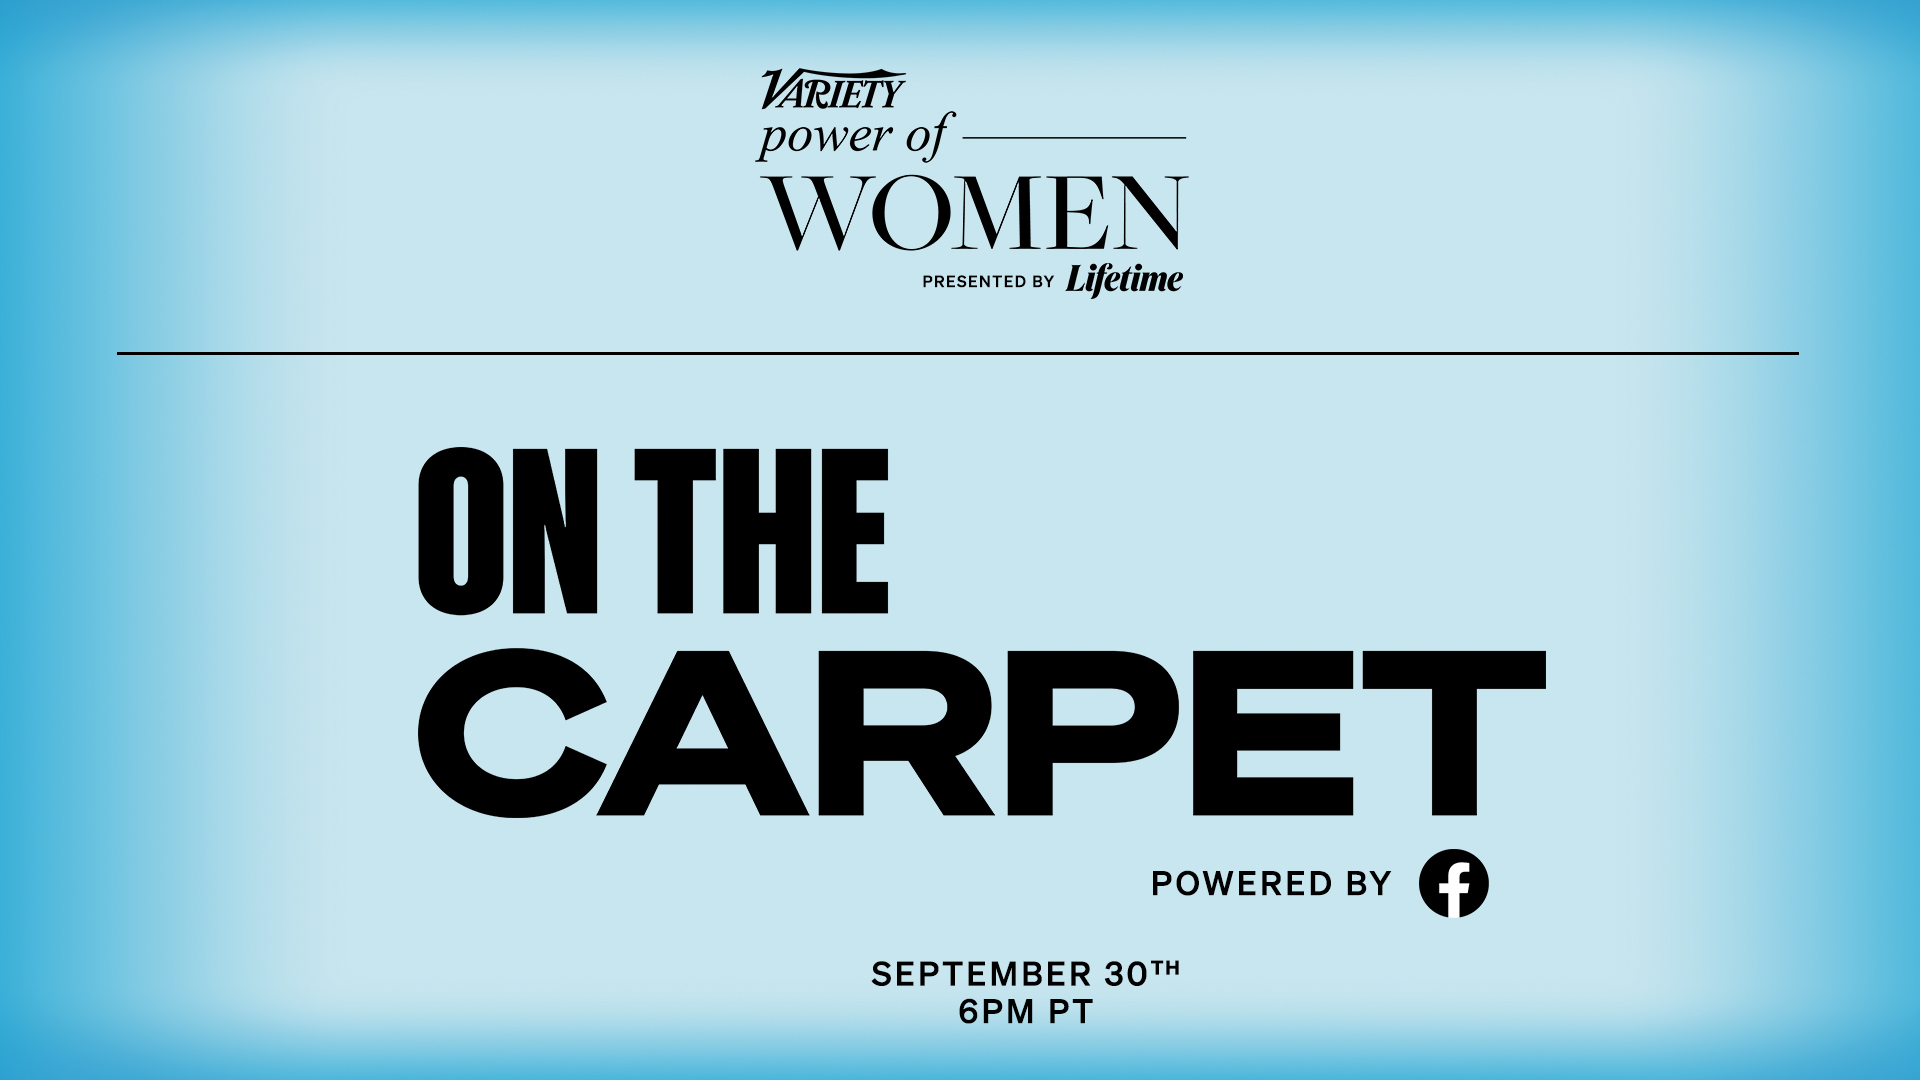 Variety and Facebook Partner on Power of Women Live Preshow With Katy Perry, Lorde, Amanda Gorman and More